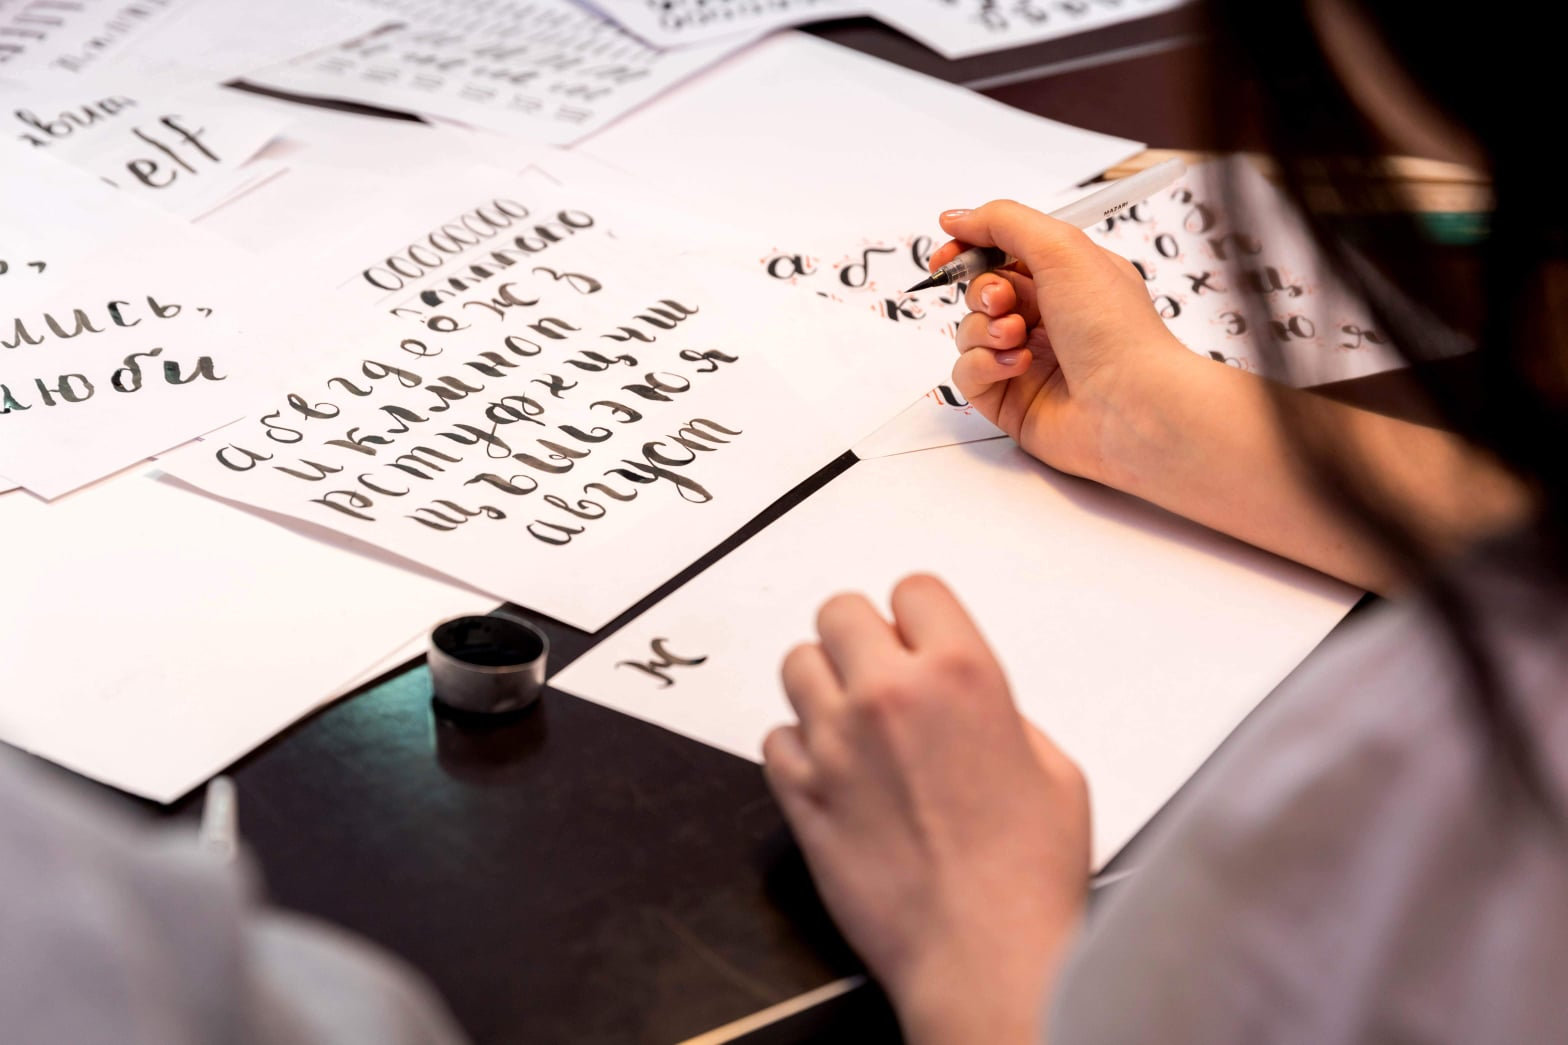 Beginner's Faux Calligraphy